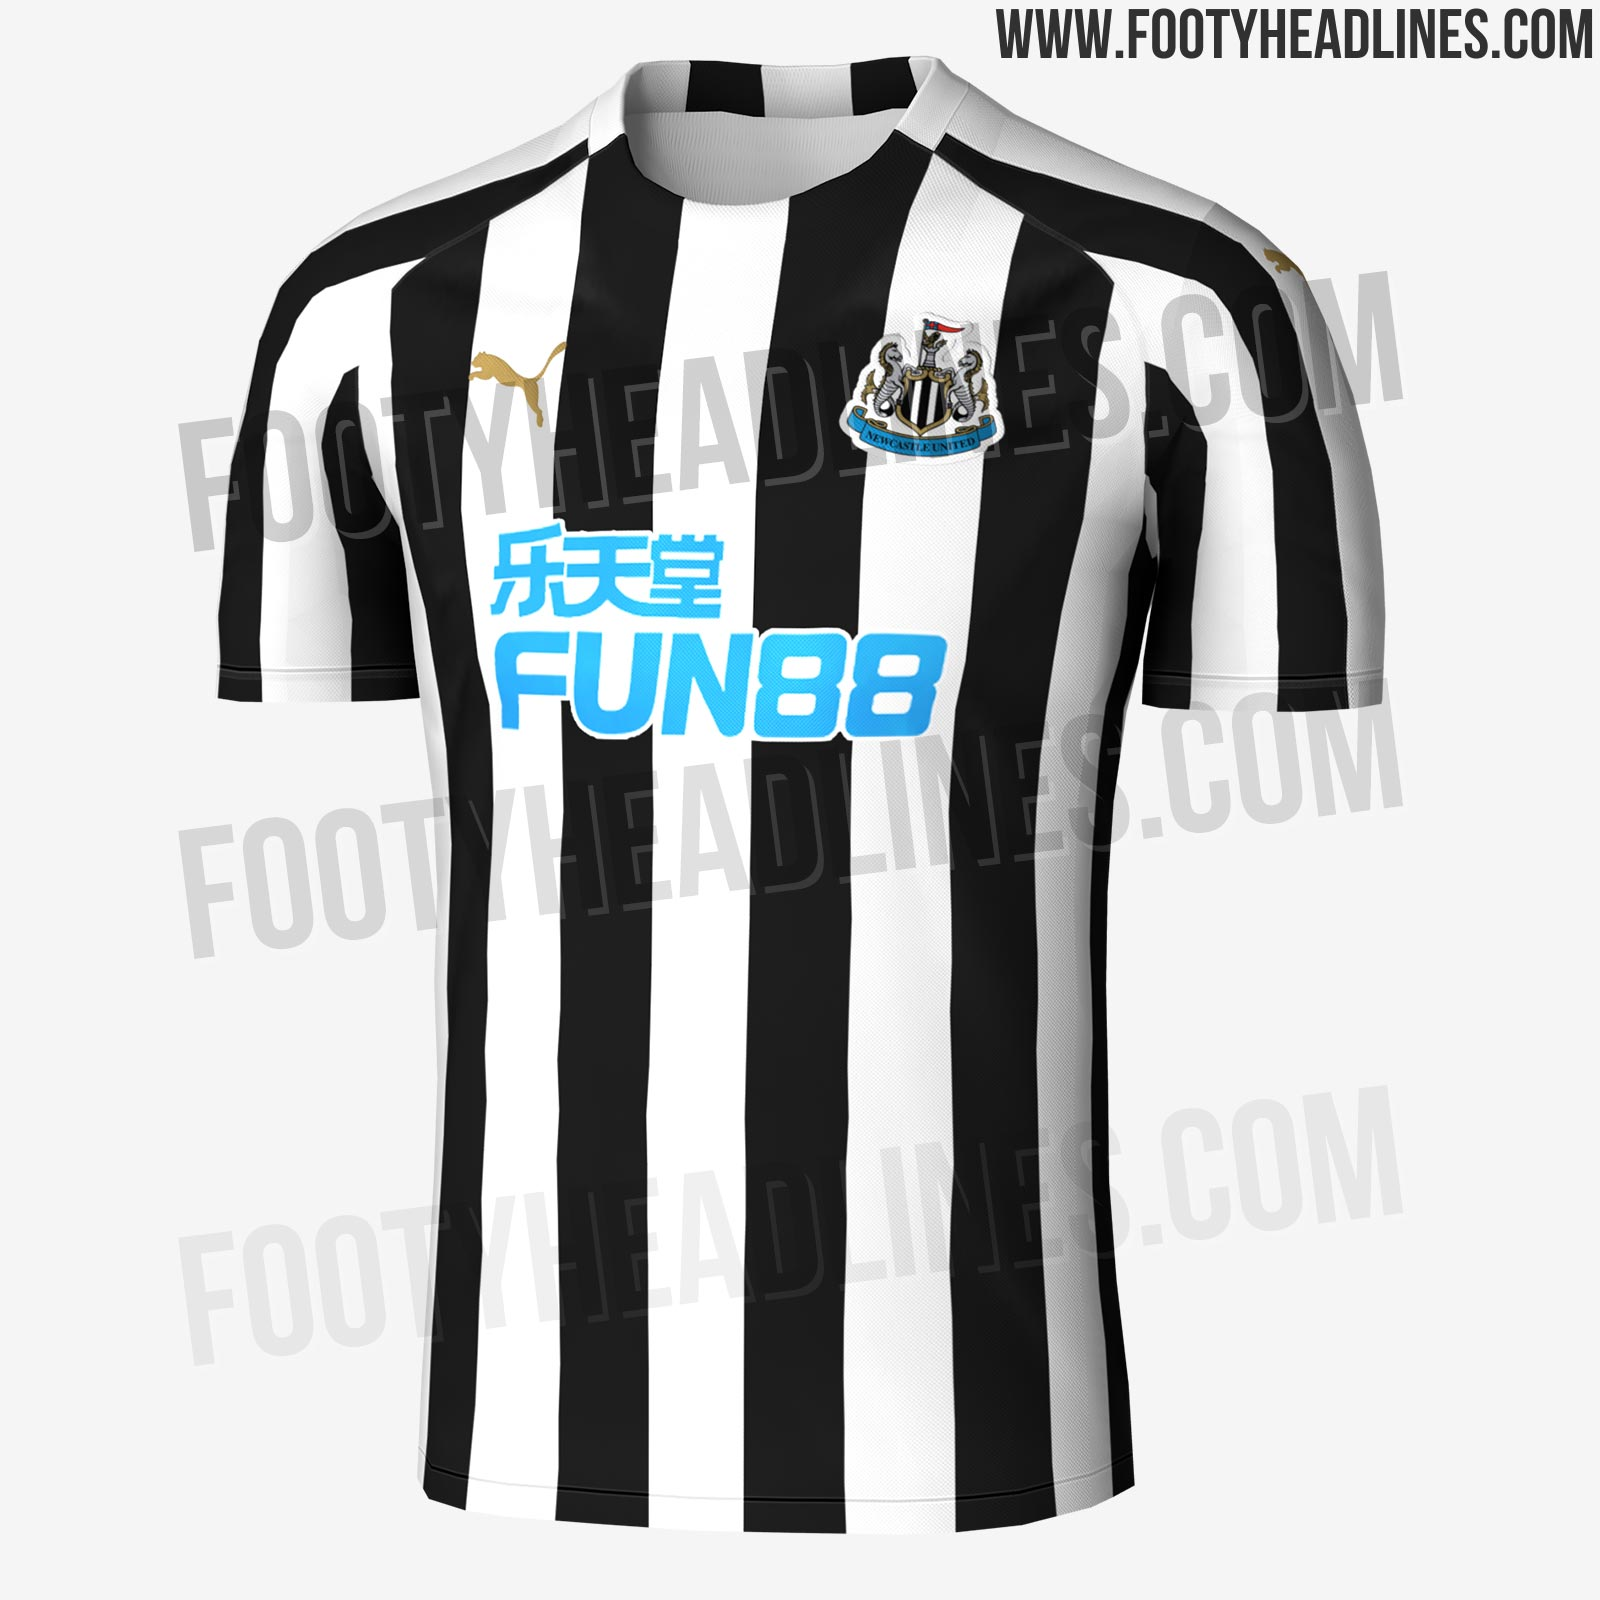 newcastle-united-18-19-home-kit-2.jpg